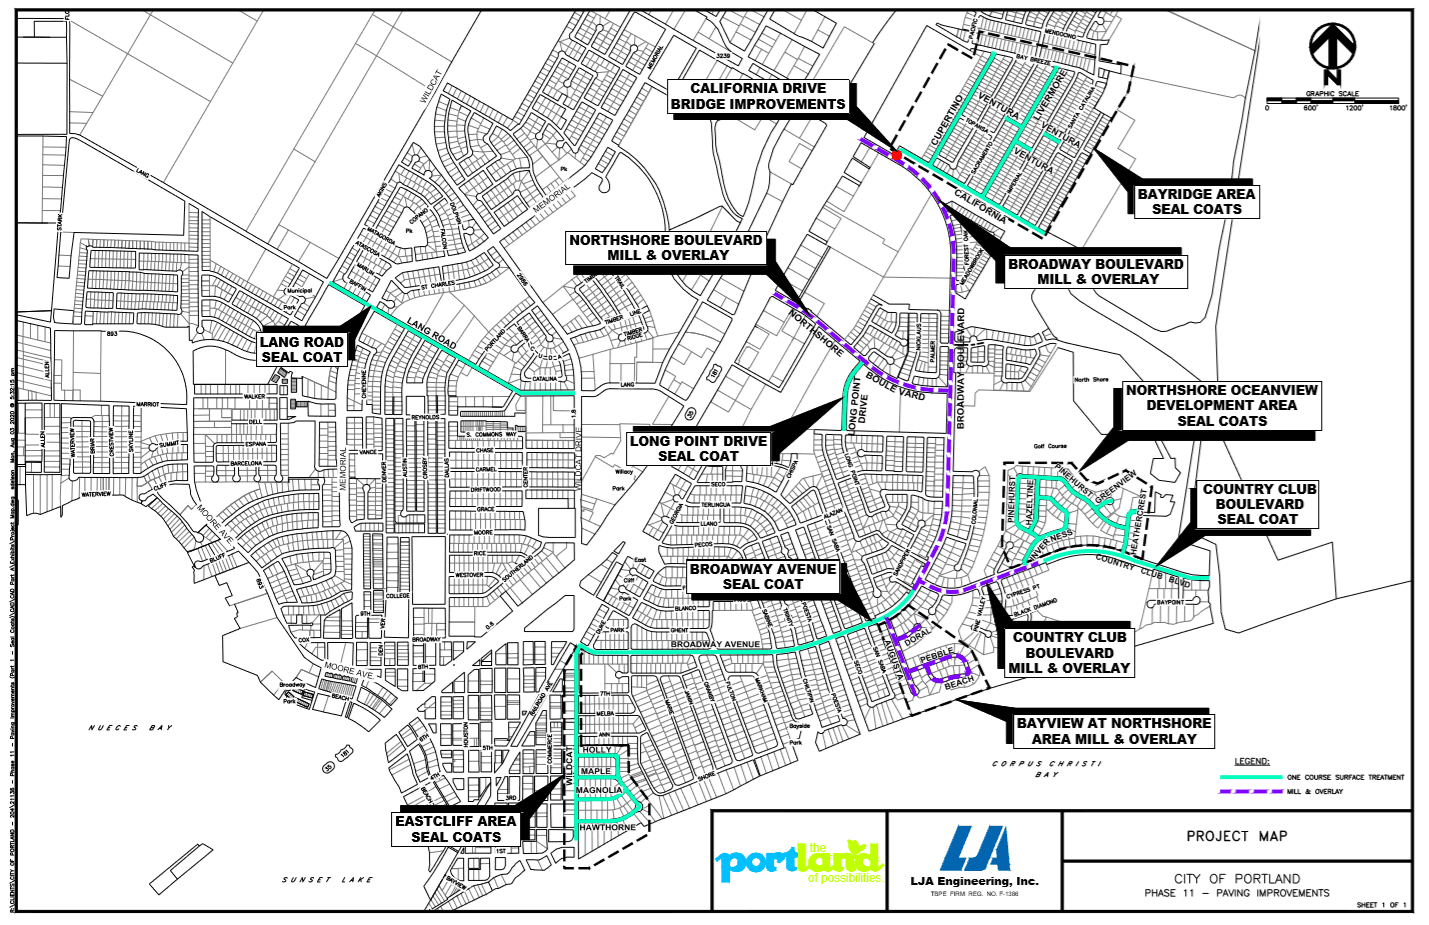 Project map - Phase 11 Paving Improvements